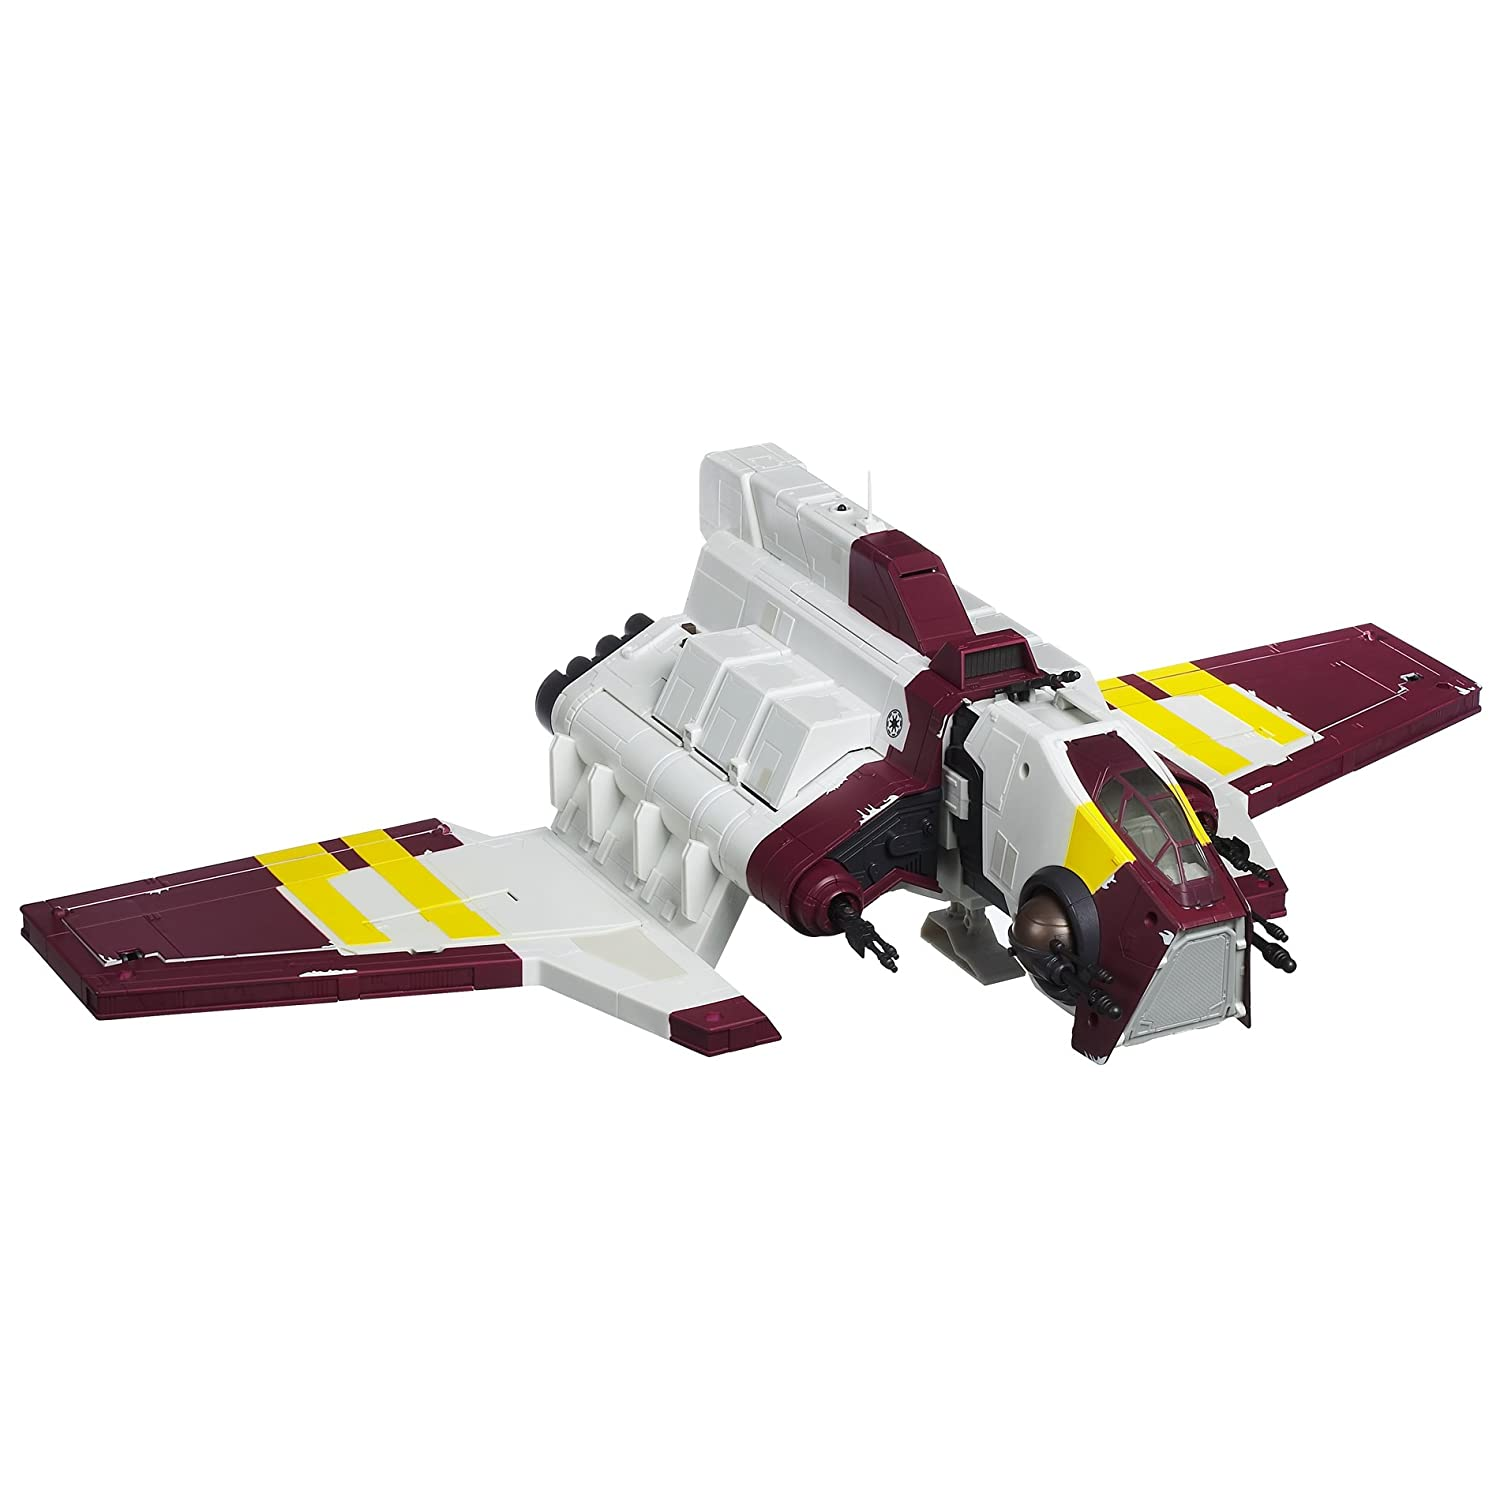 Amazon Star Wars Deluxe Republic Attack Shuttle Toys & Games